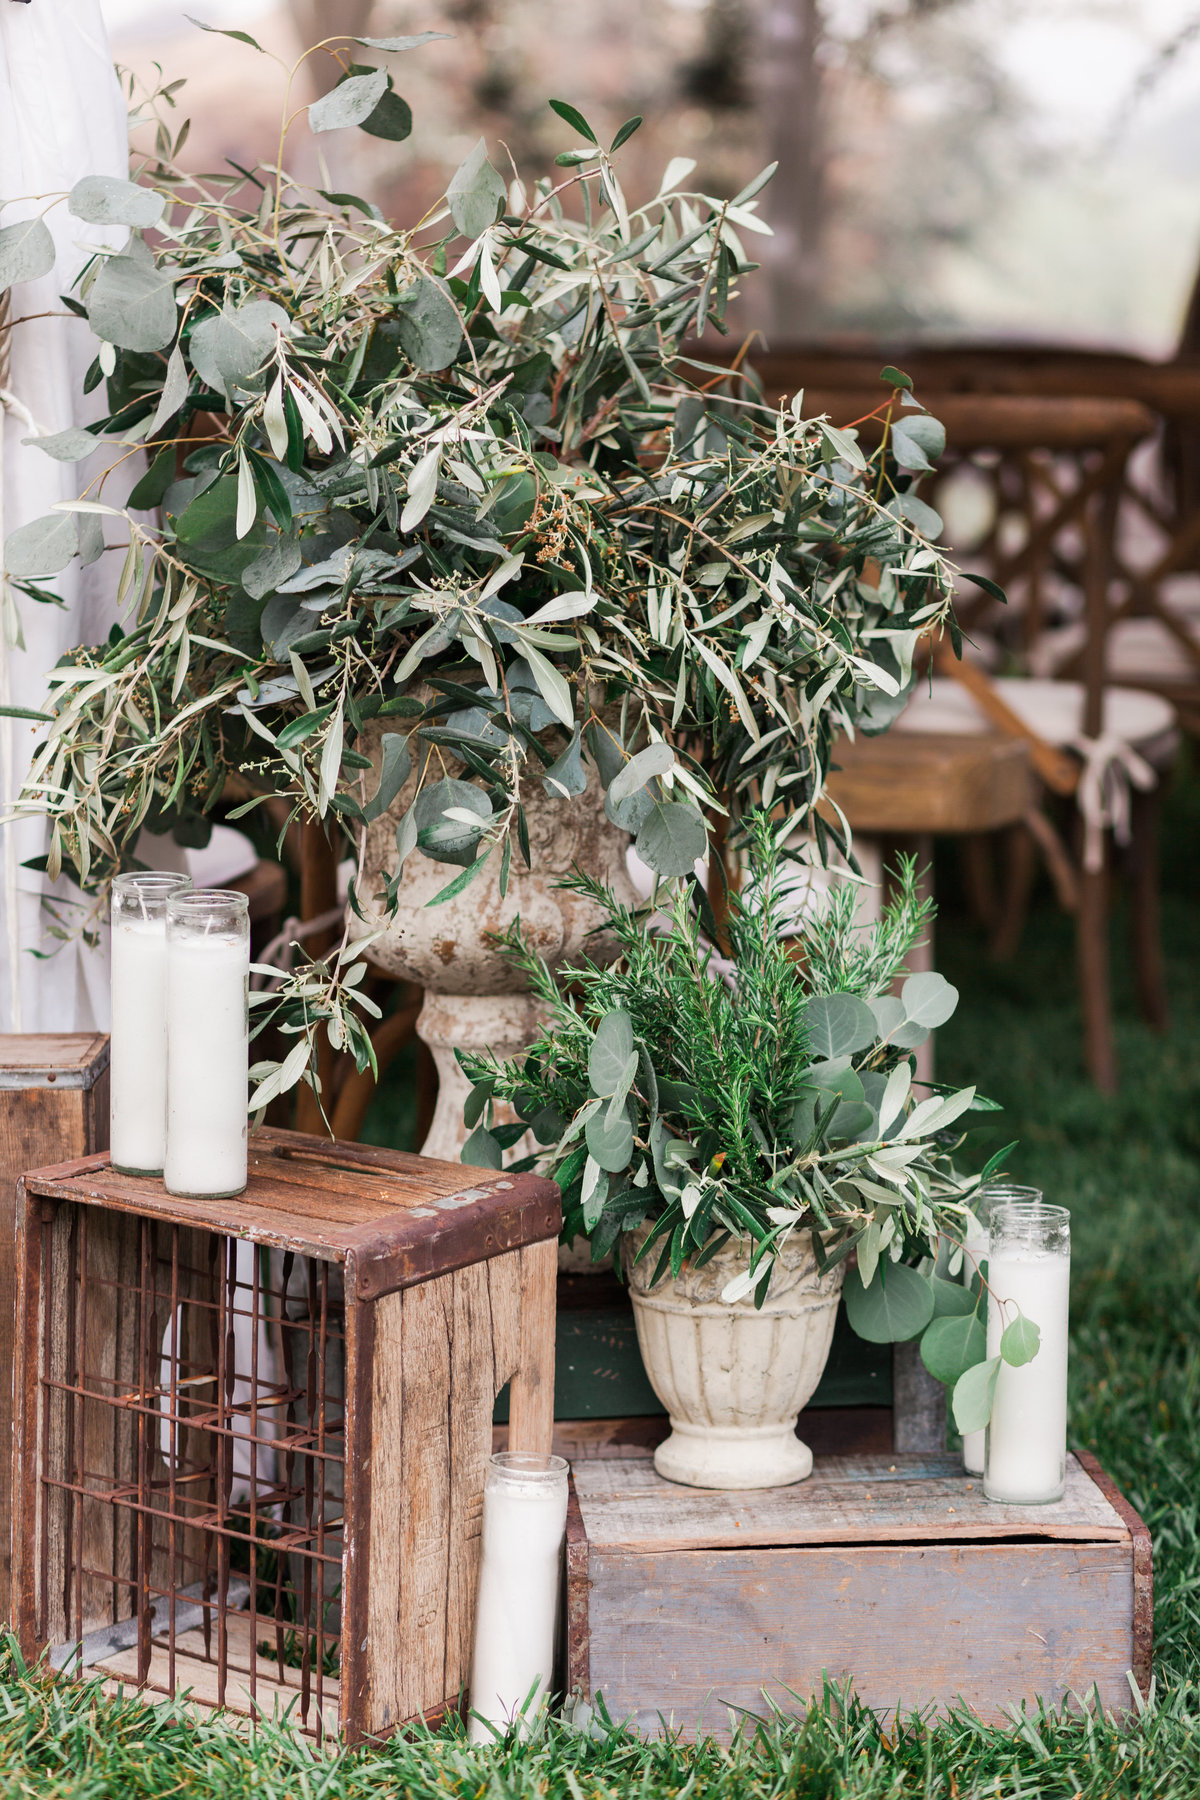 Palihouse_Cielo_Farms_Malibu_Rustic_Wedding_Valorie_Darling_Photography - 53 of 107